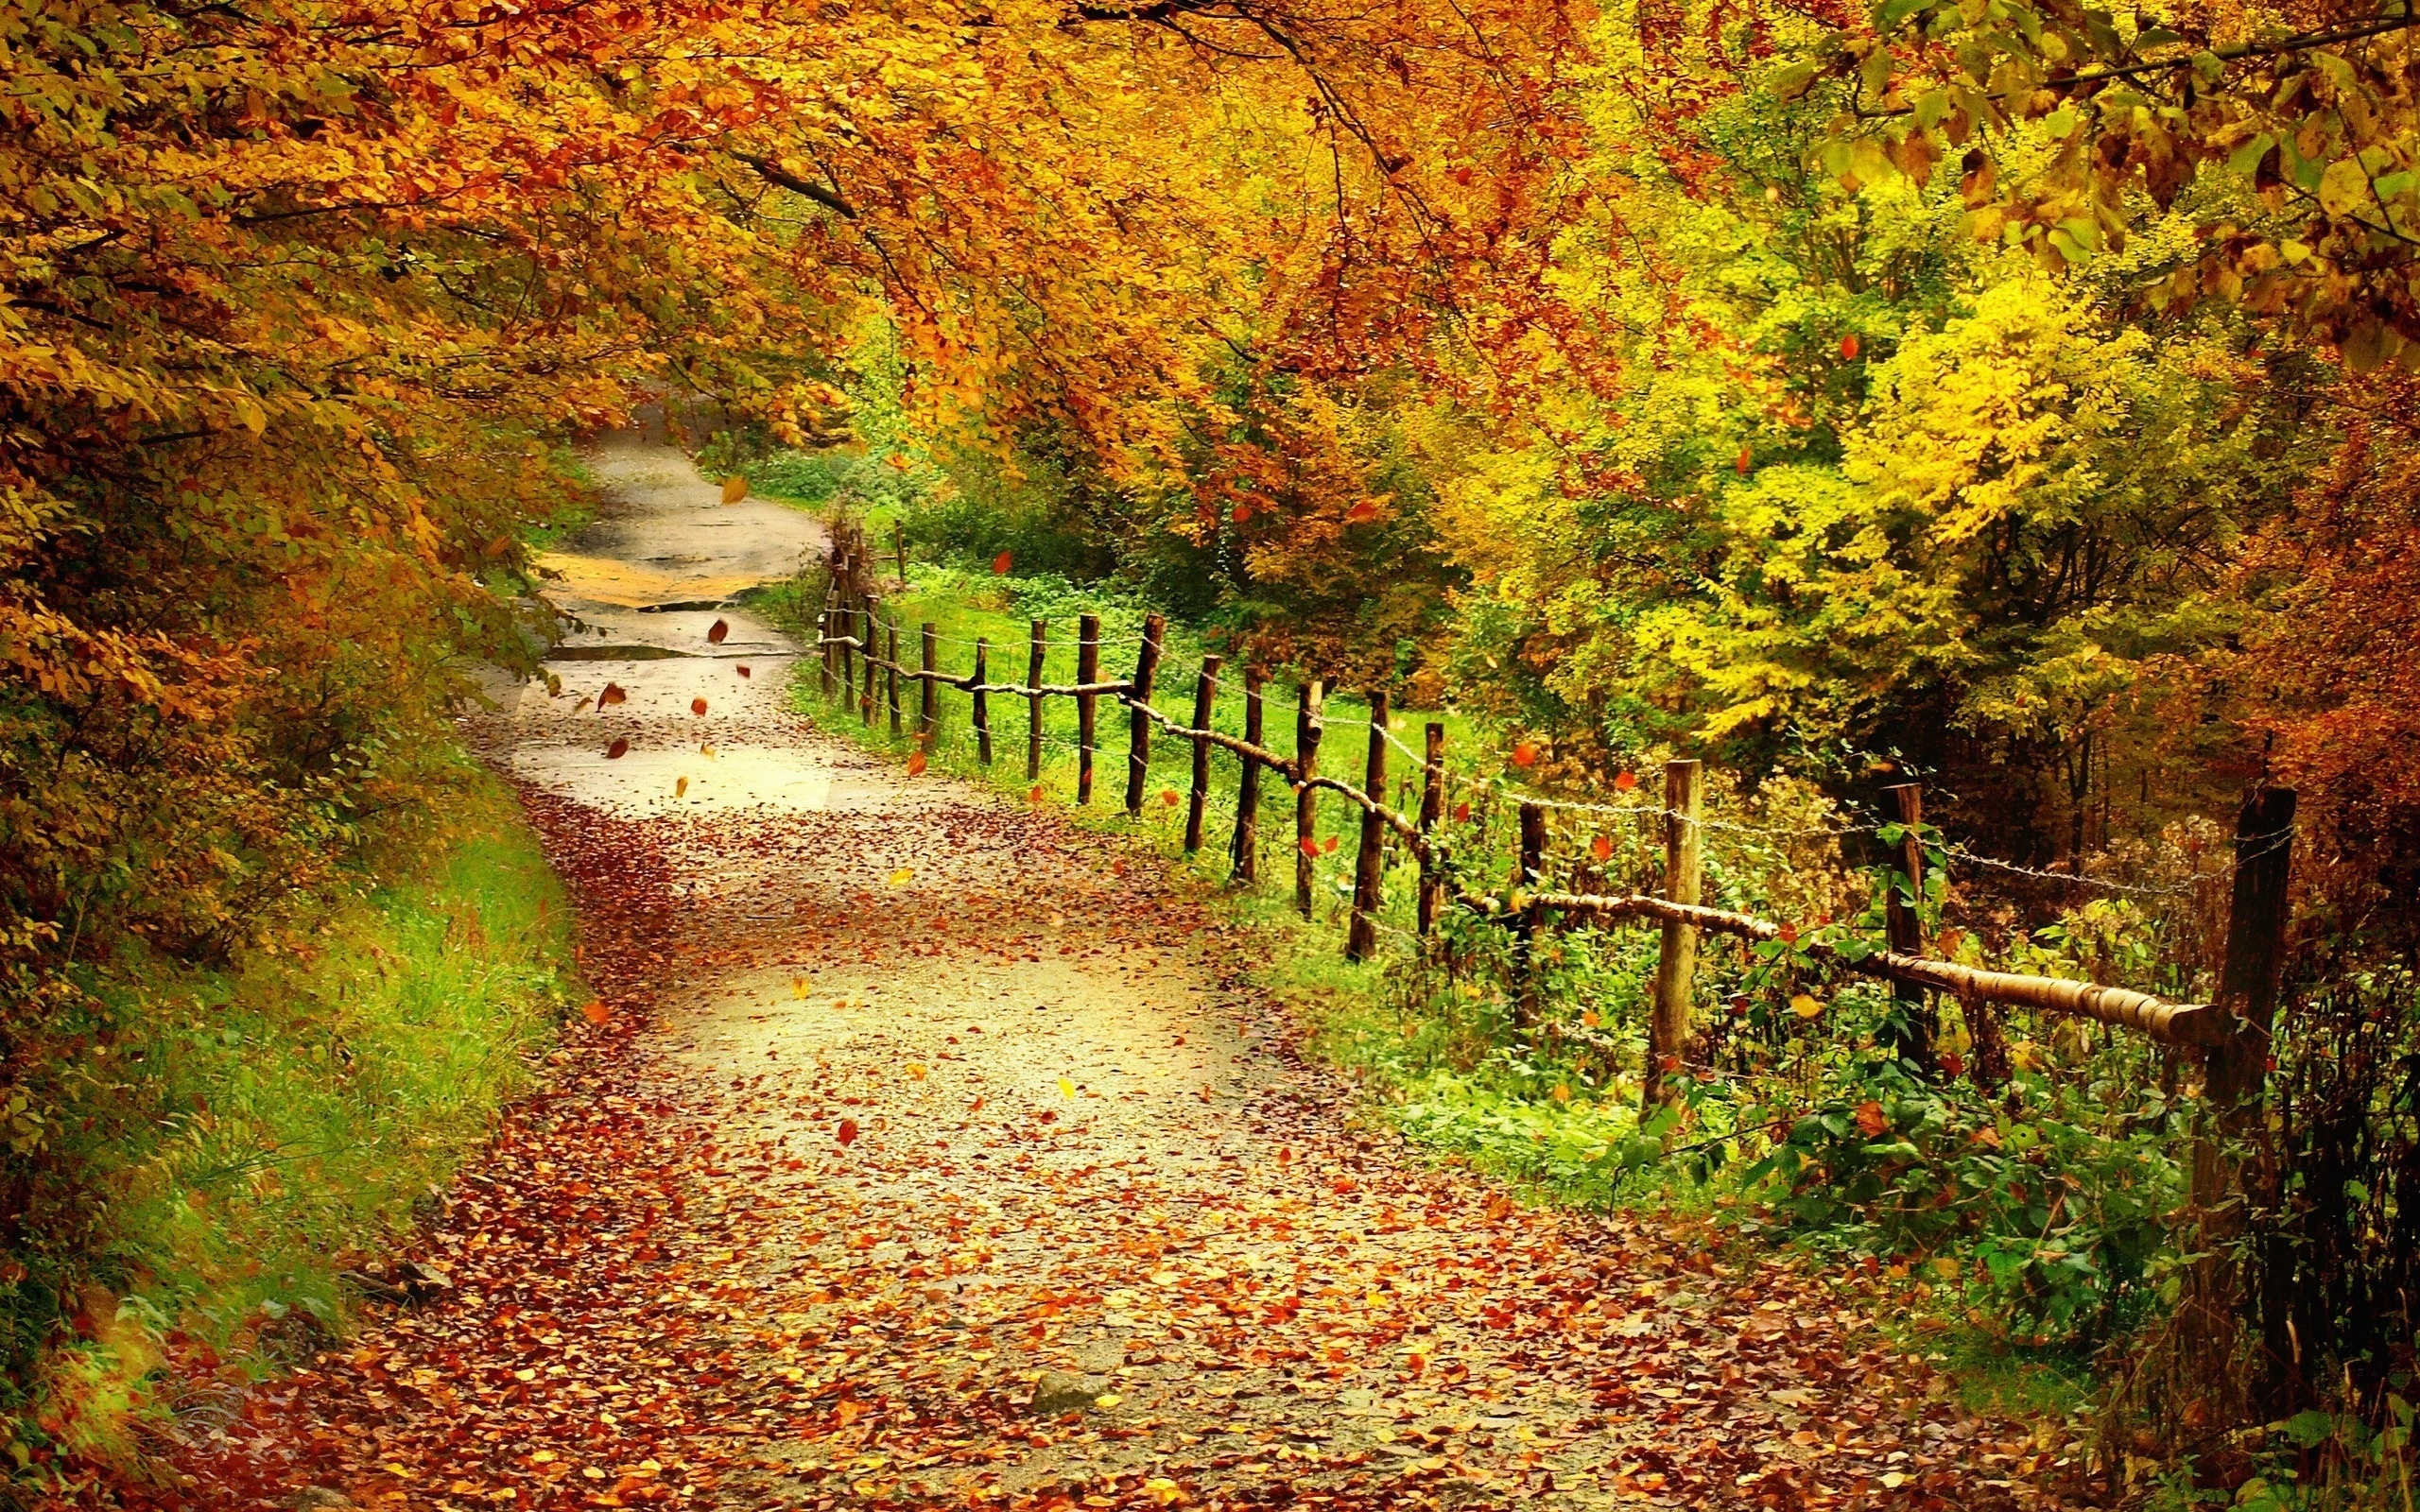 Download mobile wallpaper Autumn, Trees, Roads, Landscape for free.